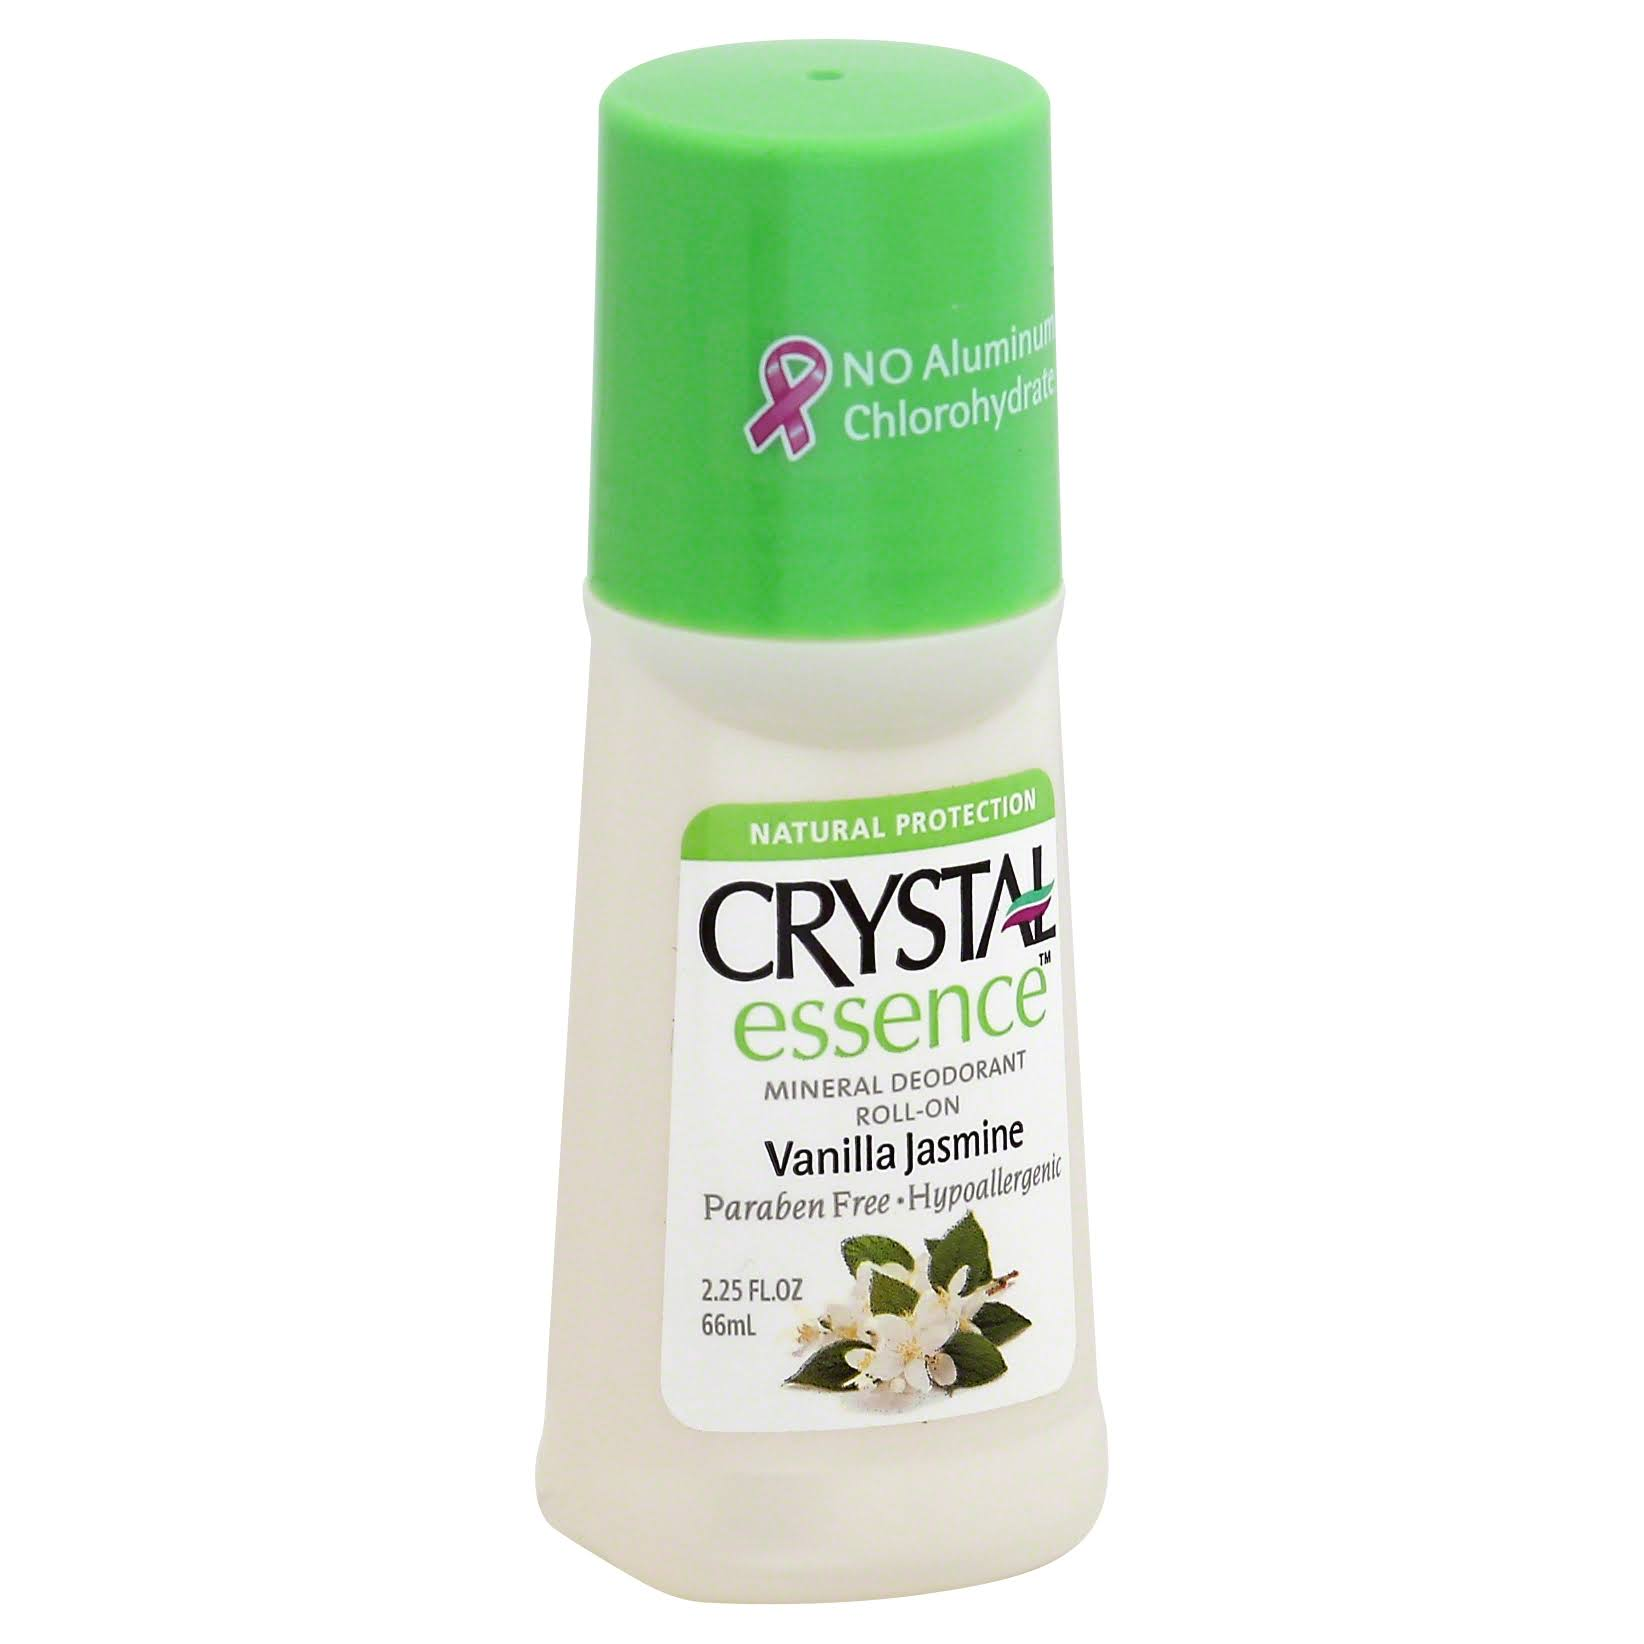 Crystal Deodorant Essence Roll-On - Vanilla Jasmine, 66ml